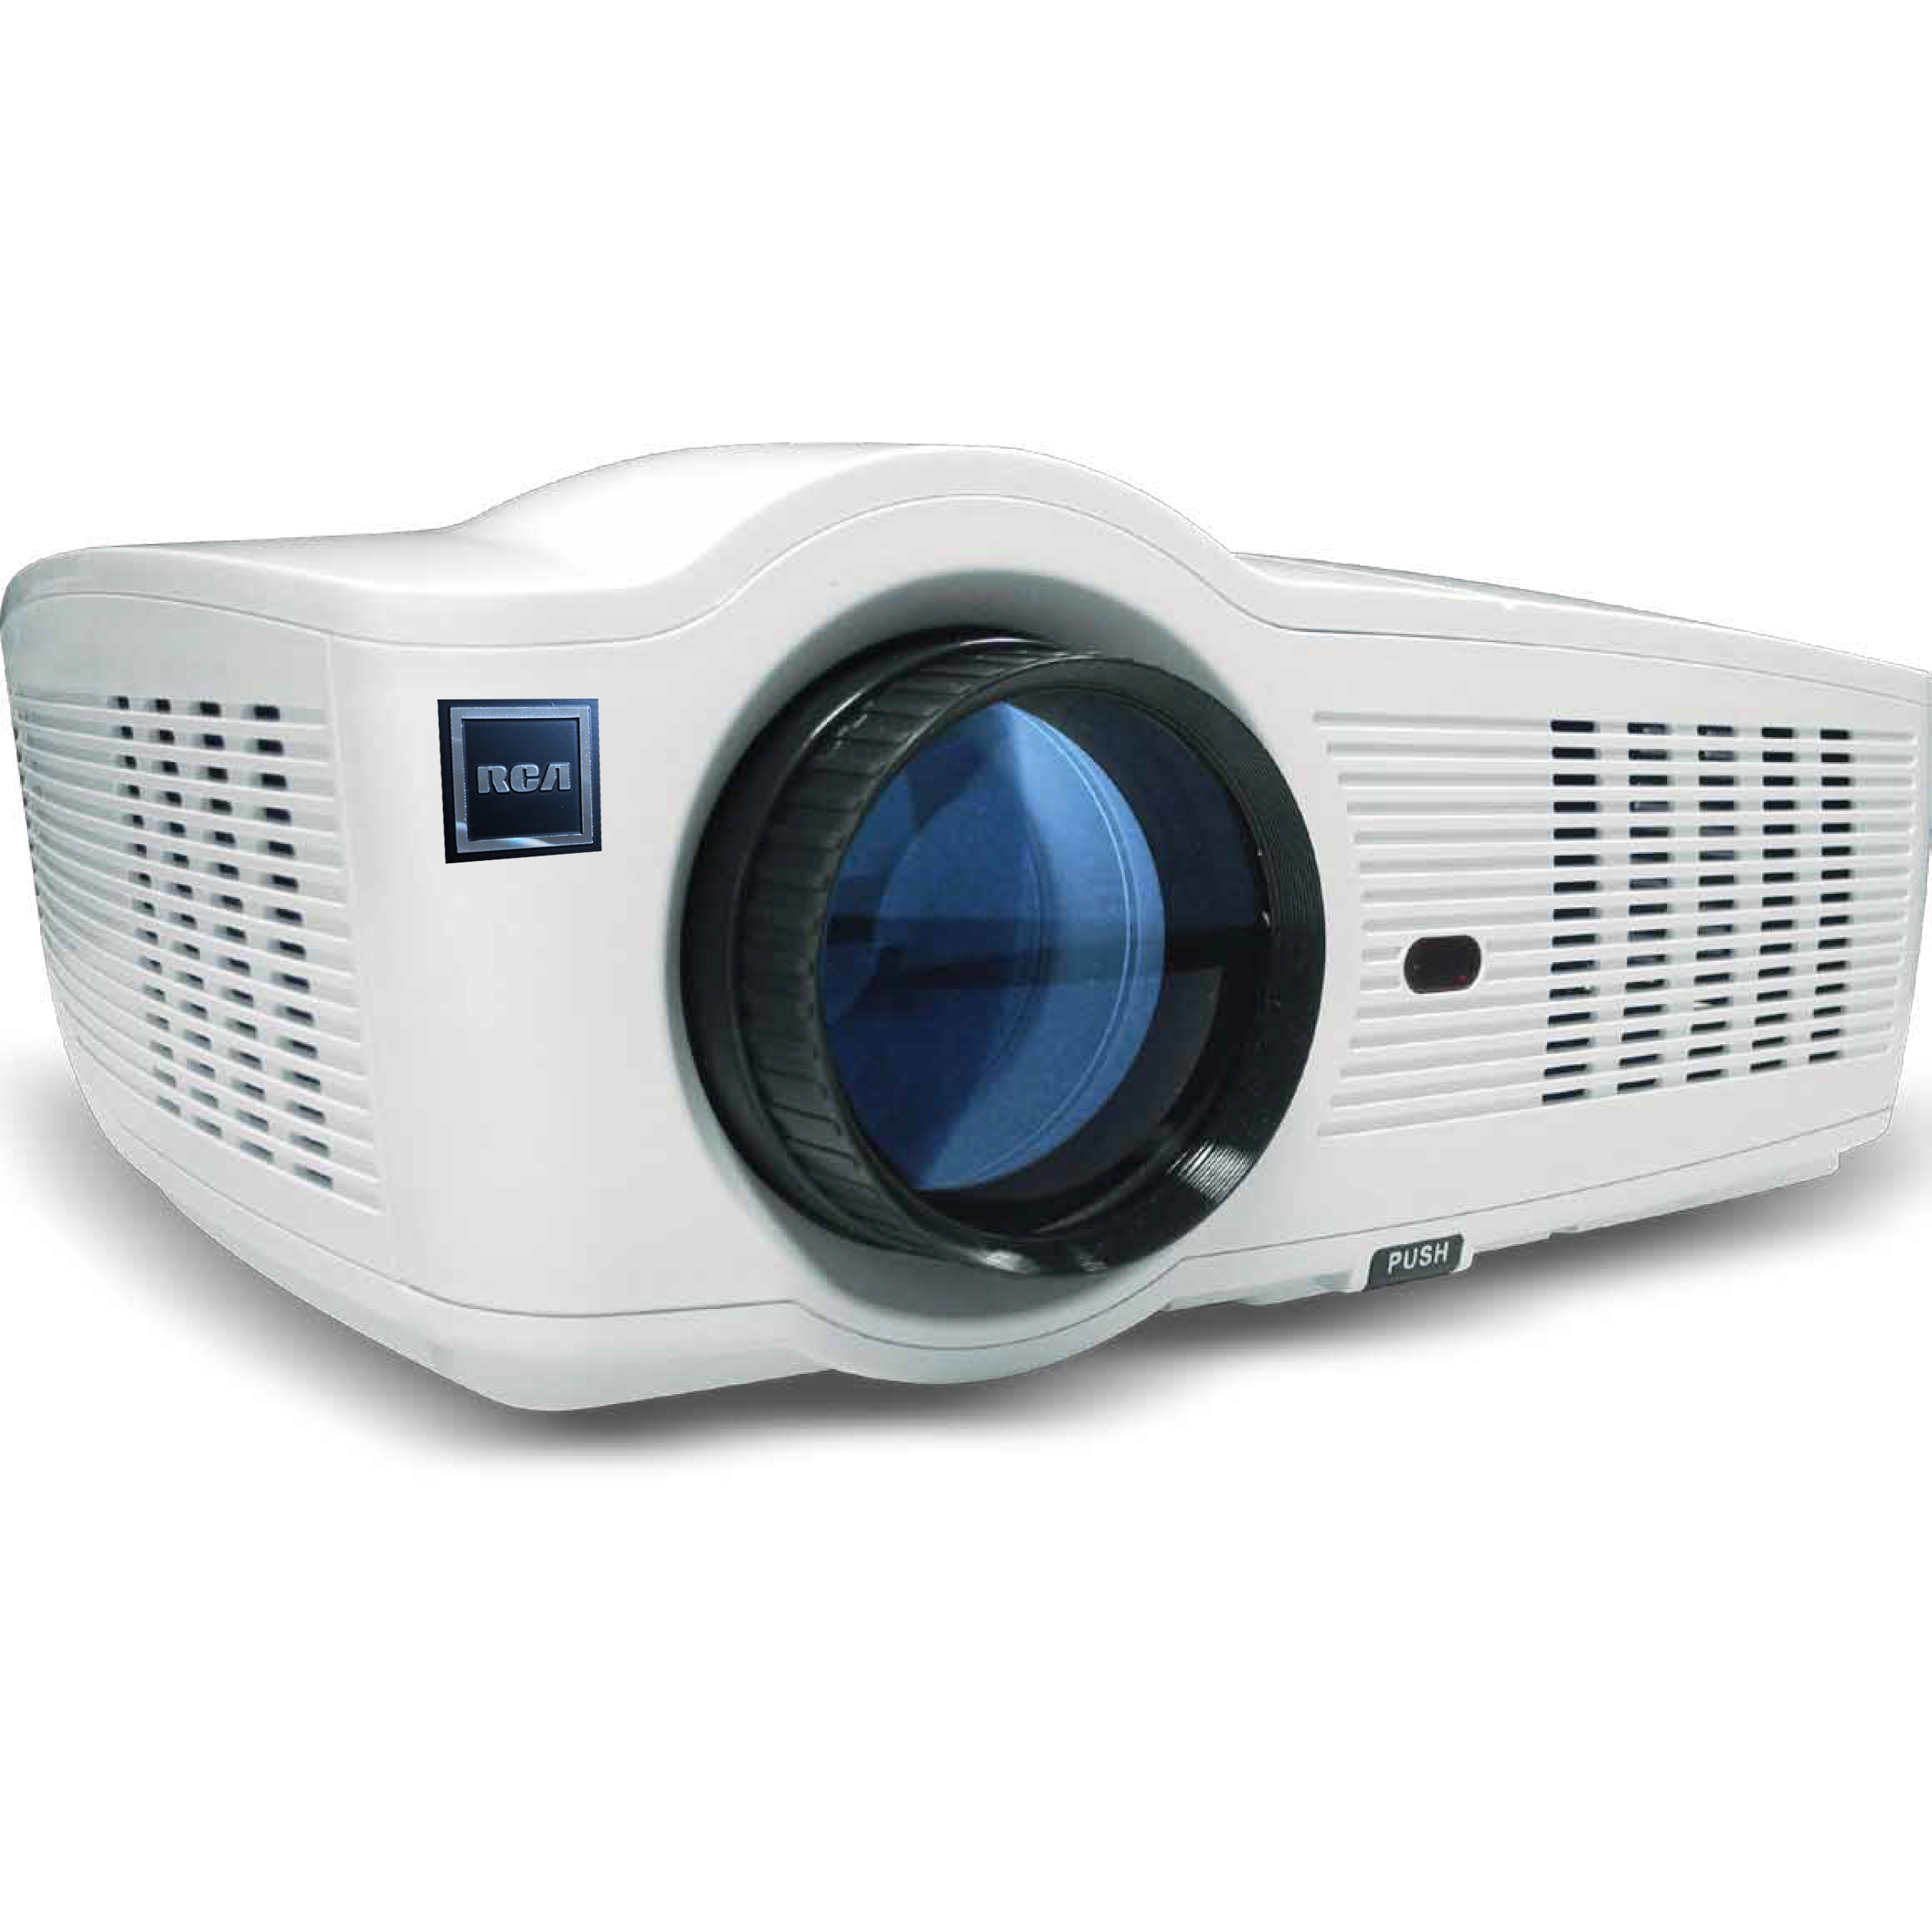 RCA RPJ129 Smart Wi-Fi LED Home Theater Projector, 720p